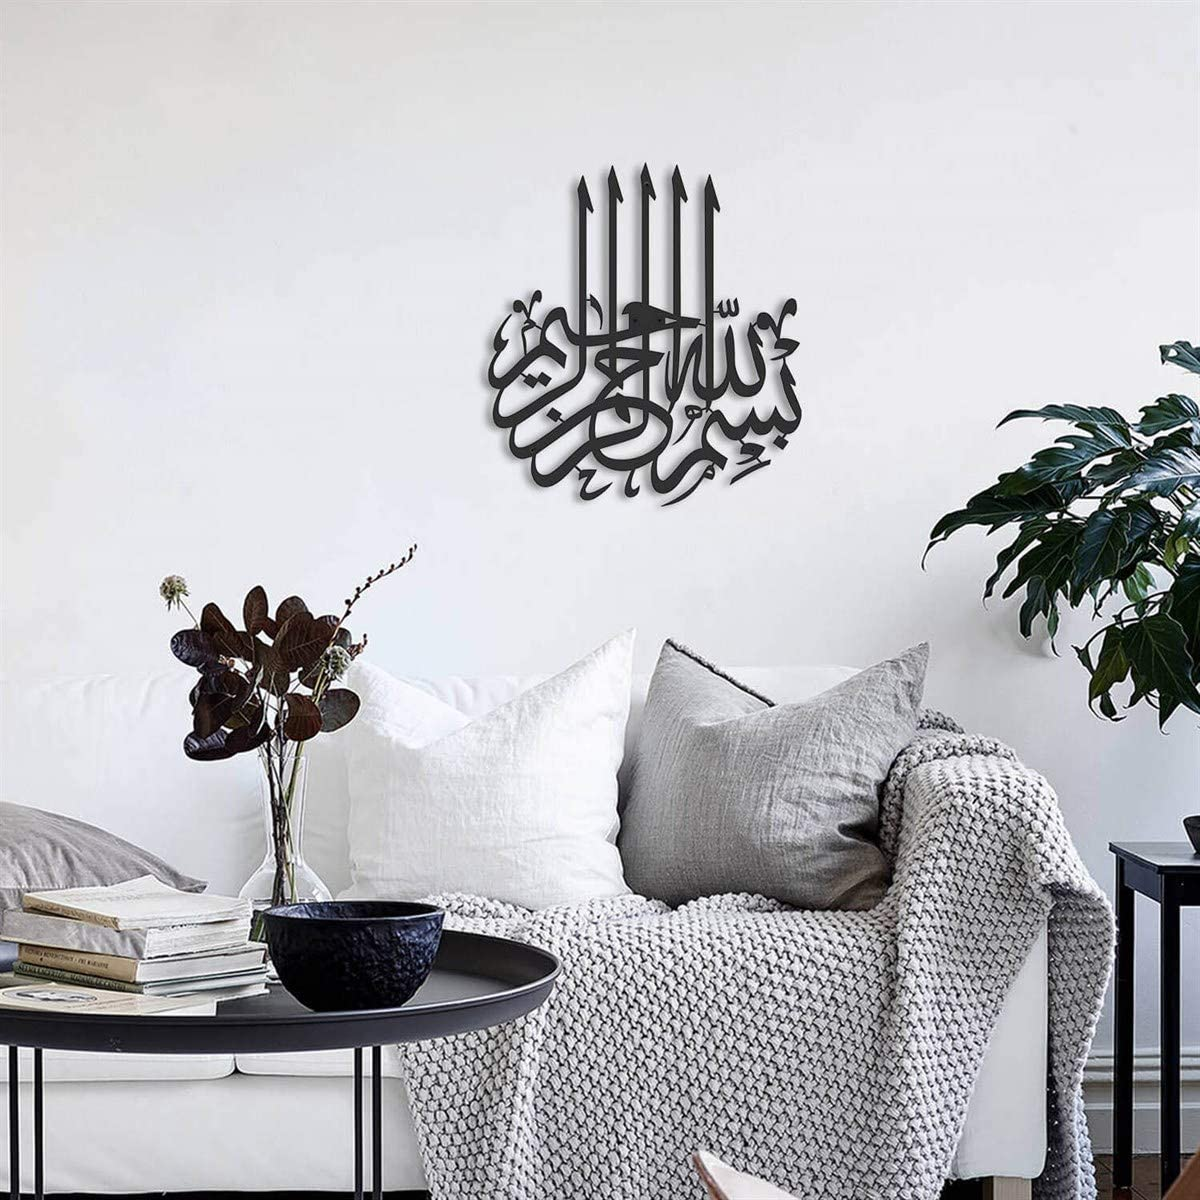 Tubibu -Besmele-Bismillahirrahmanirrahim-%100 Metal Islamic Wall Art, Wall Decor, Gift for Muslims, Ramadan Gift, Islamic Wall Decor, The Qur'an -In the Name of God, the Most Merciful (Black, Small)